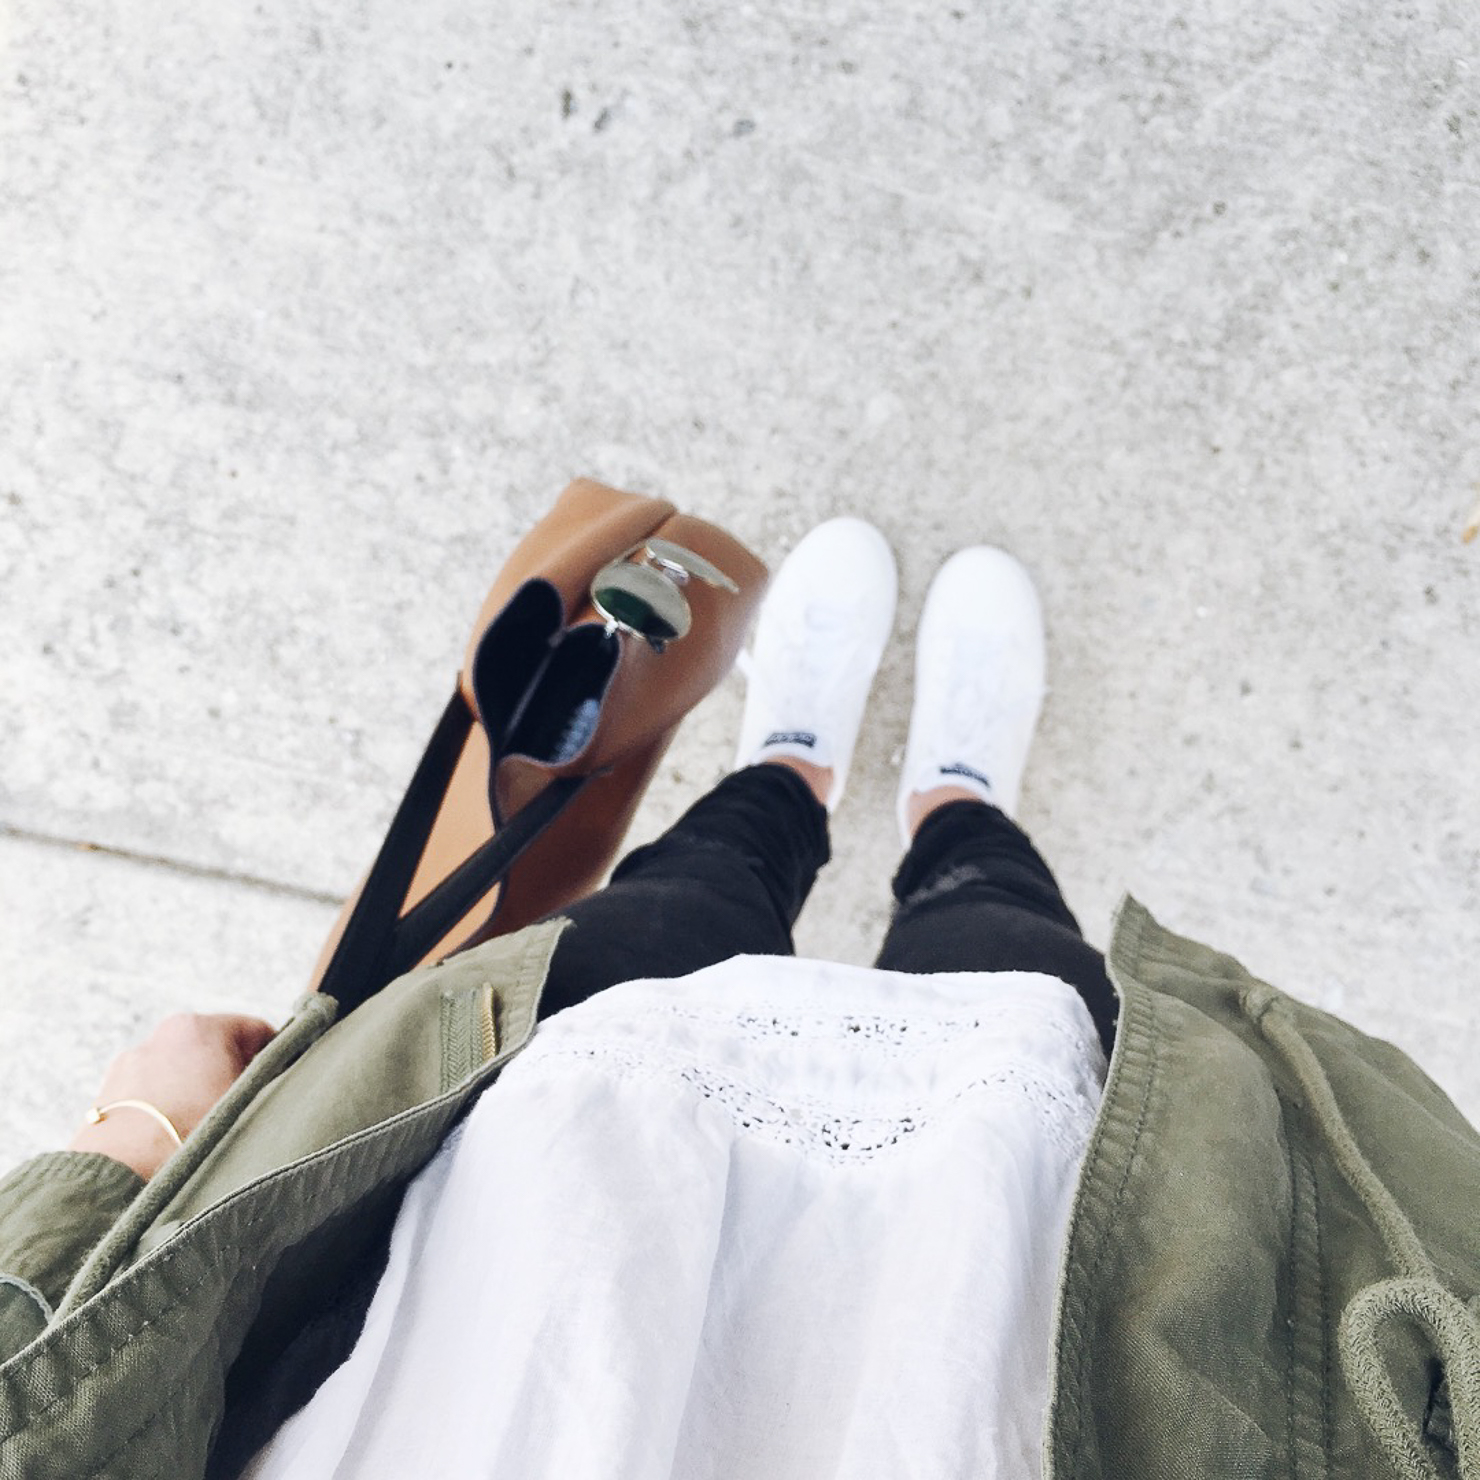 adidas-neo-advantage-sneakers-white-eyelet-blouse-old-navy-cargo-jacket-mirrored-aviators-errands-outfit-casual-style